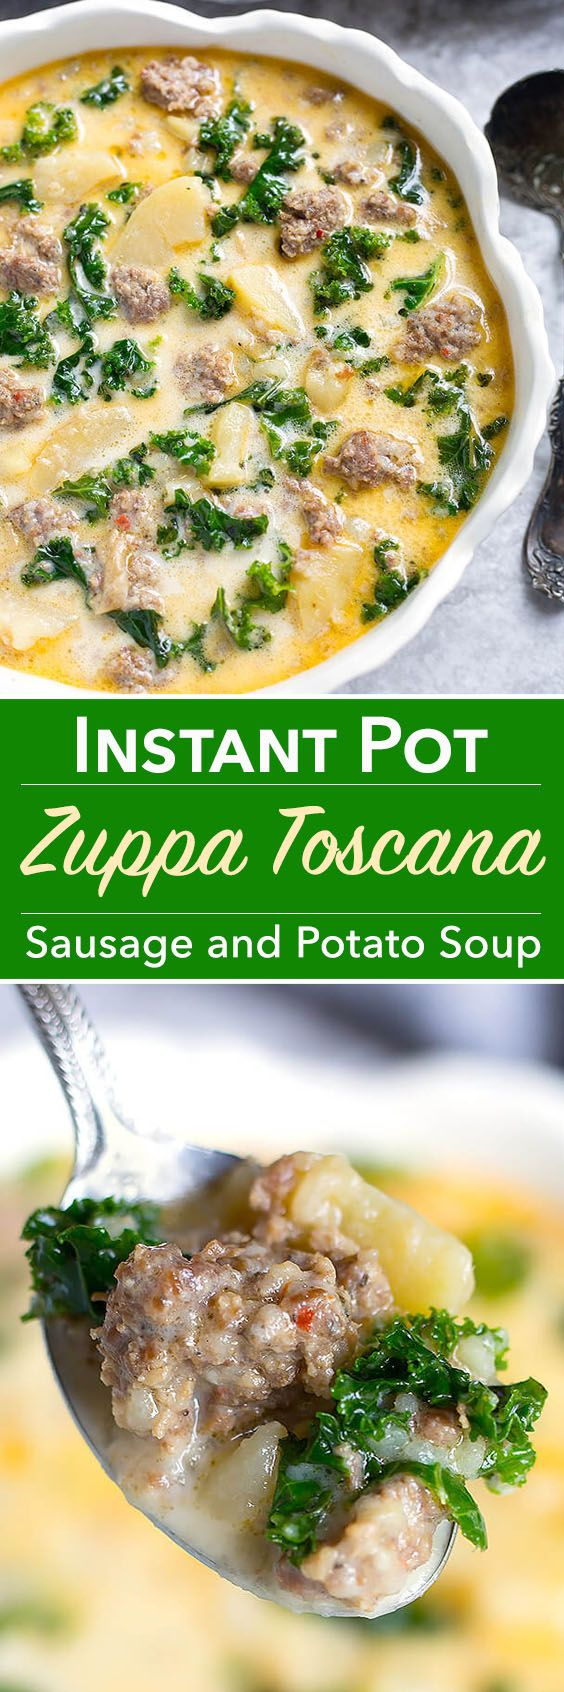 Make Zuppa Toscana Sausage Potato Soup in your Instant Pot! A very delicious hearty soup. simplyhappyfoodie.com #instantpotrecipes #instantpotsoup #instantpotzuppatoscana